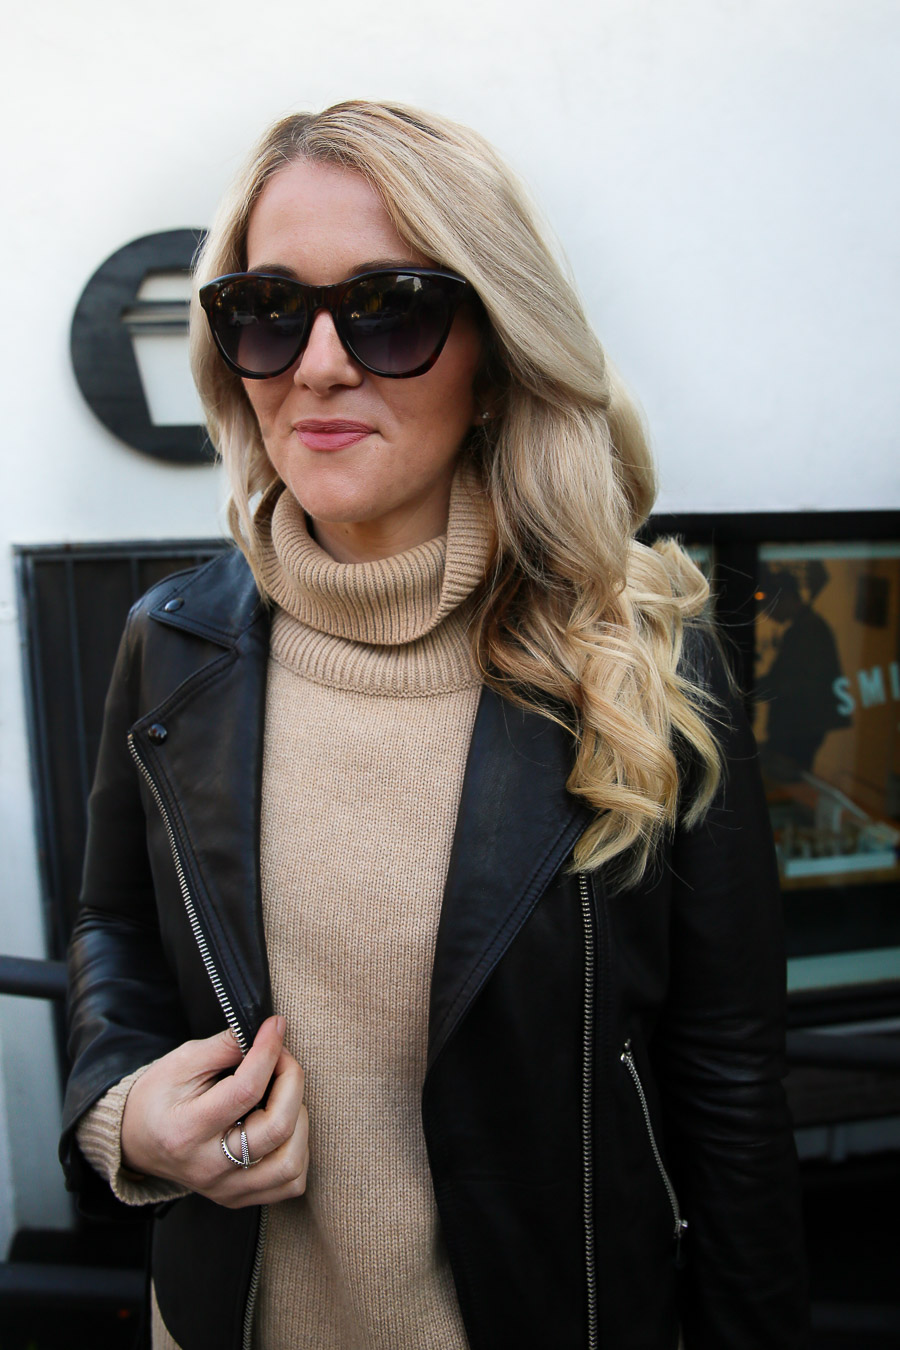 Turtleneck and Leather Jacket Outfit for Women